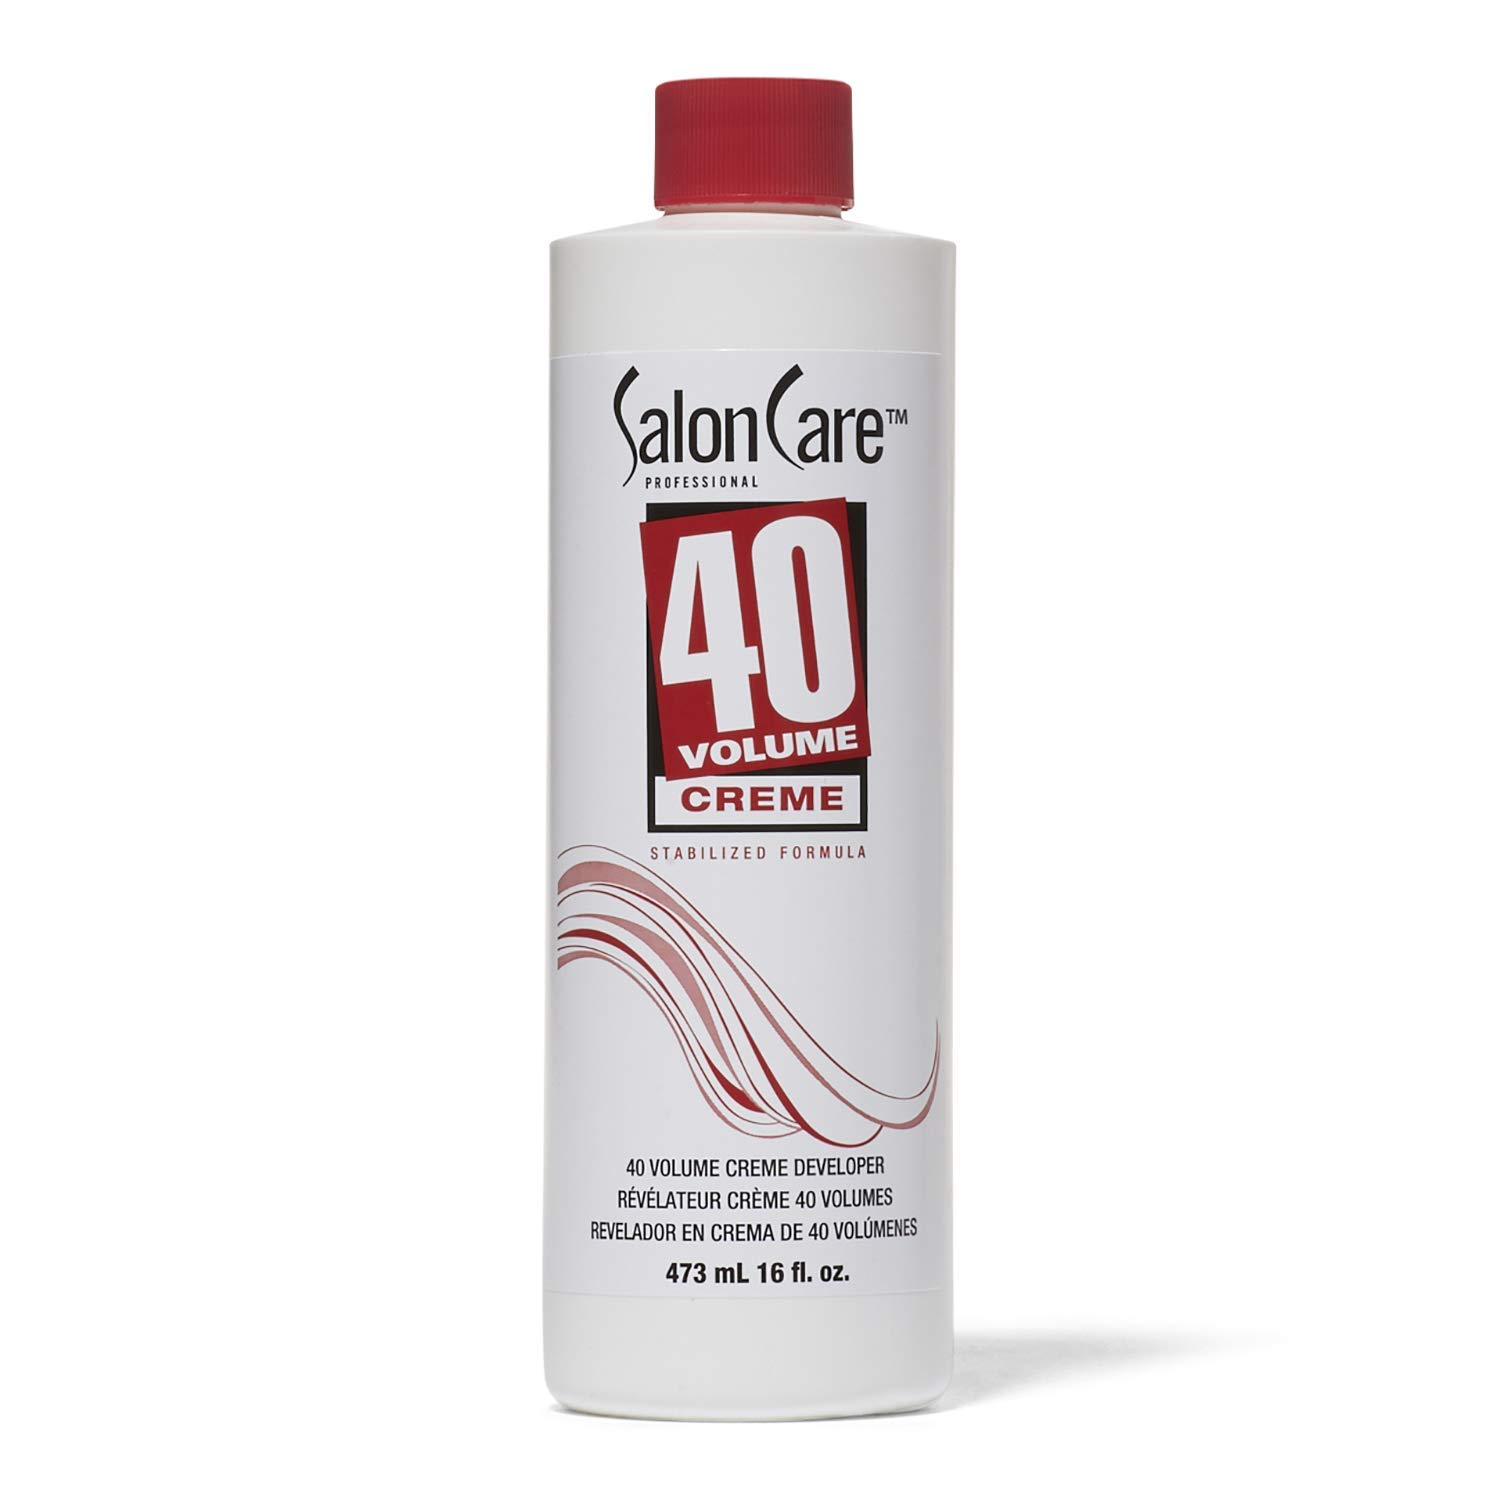 40 Volume Creme Developer, 16 oz